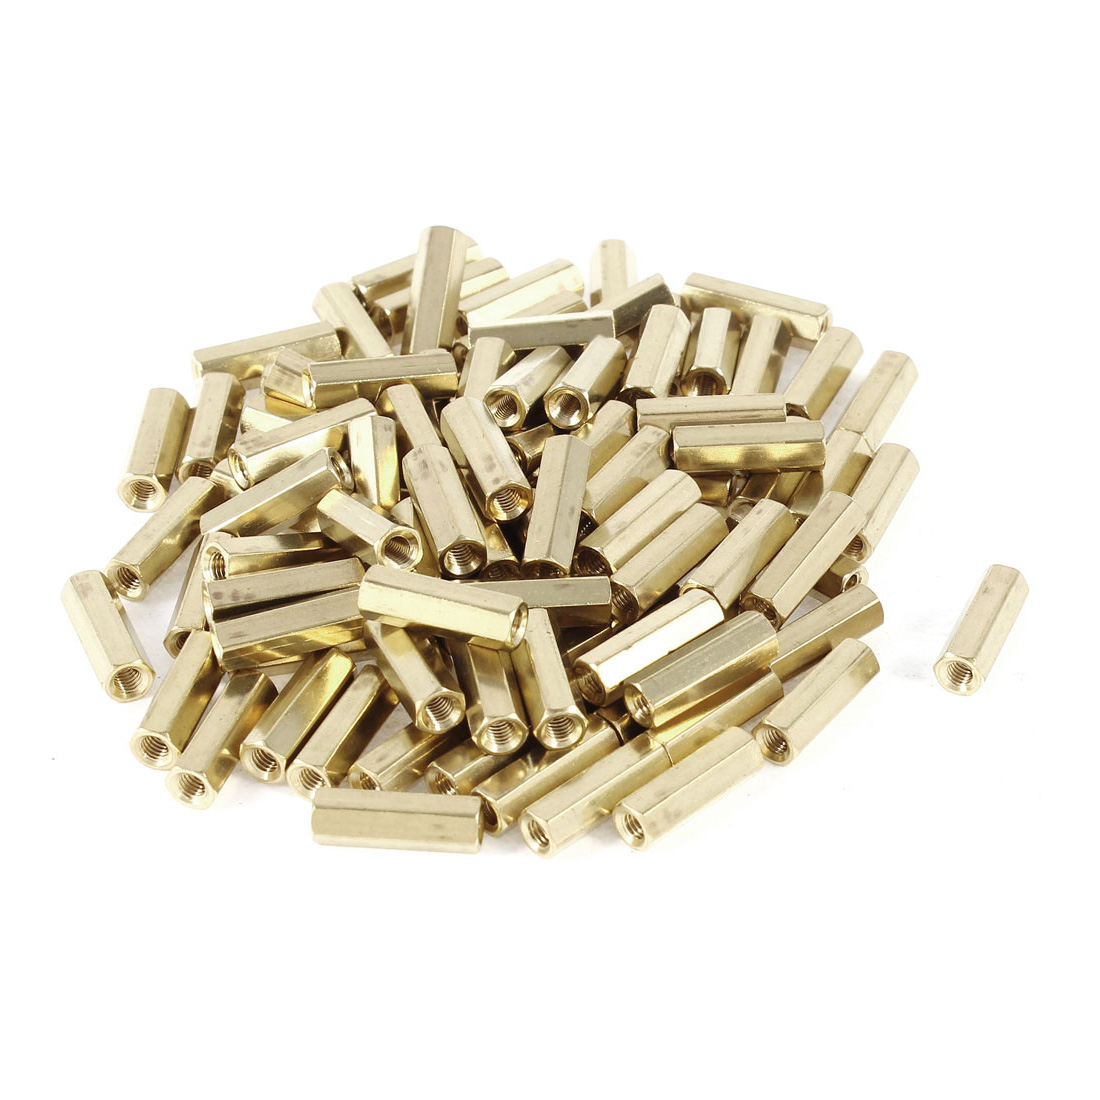 100 Pieces M3 Female Thread PCB Brass Standoff Spacer 15mm High Gold Tone M3x15